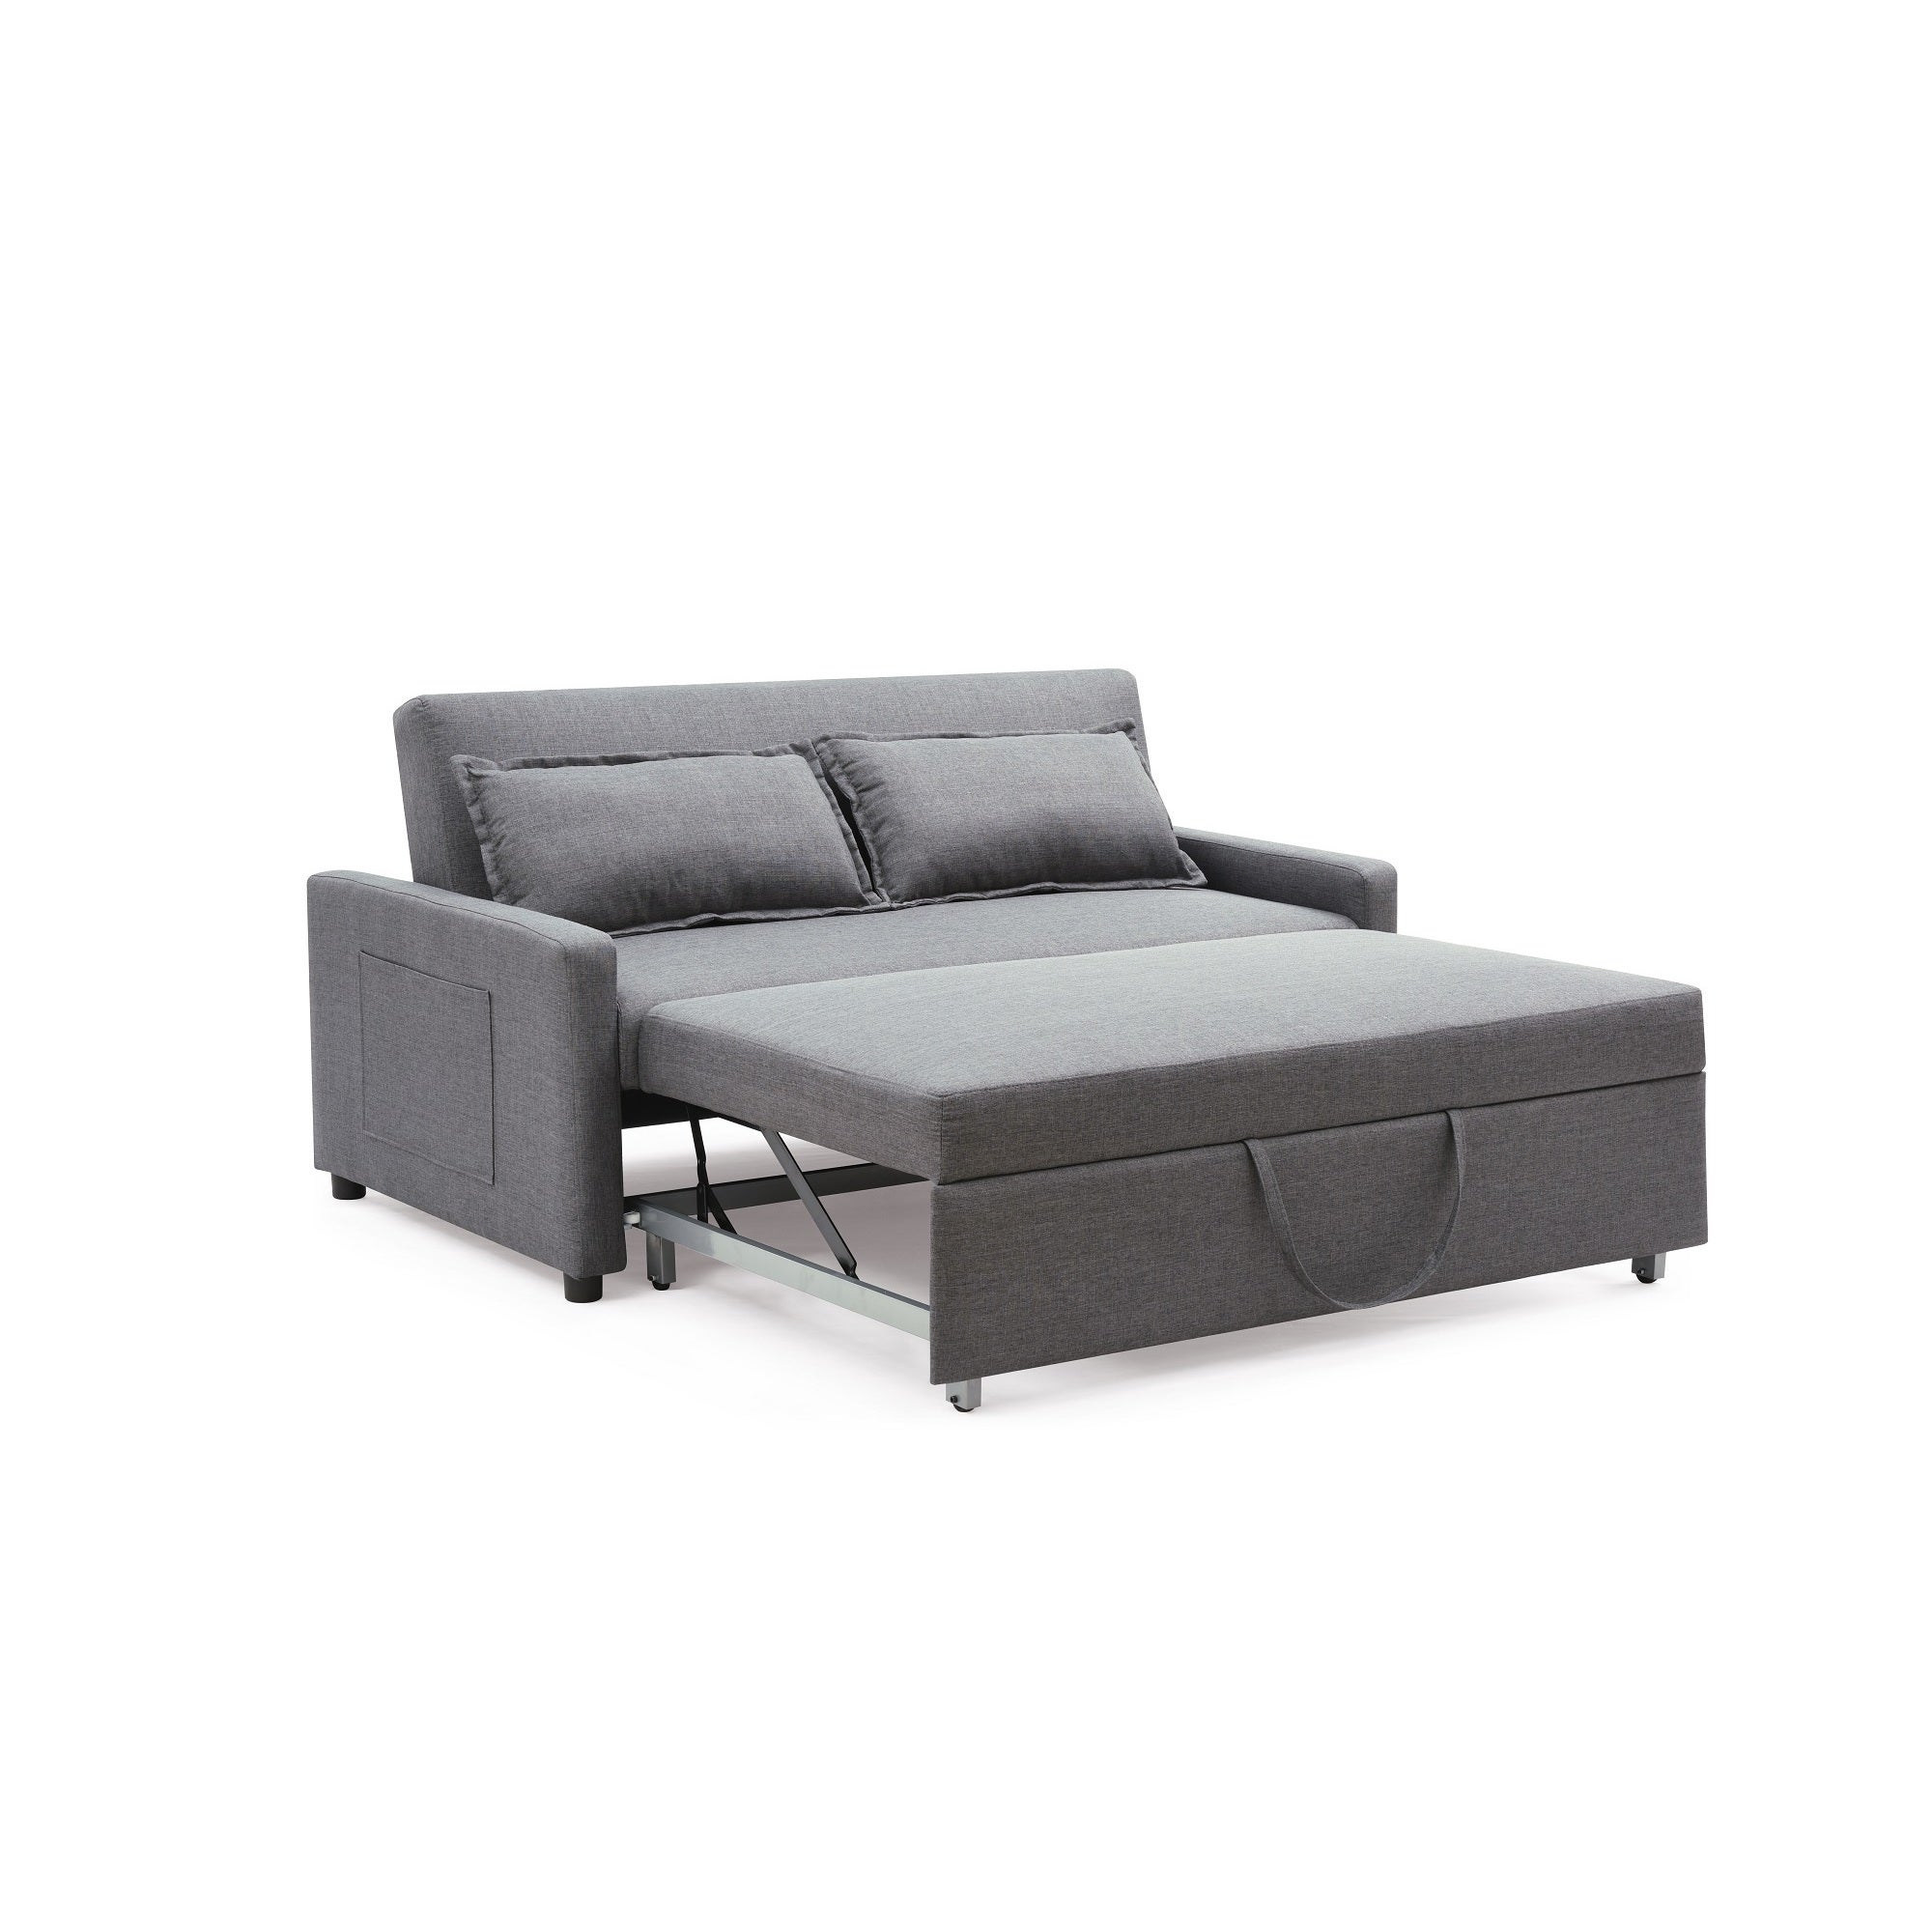 Shop Modern Convertible Sofa with Pullout Bed - Free Shipping On ...